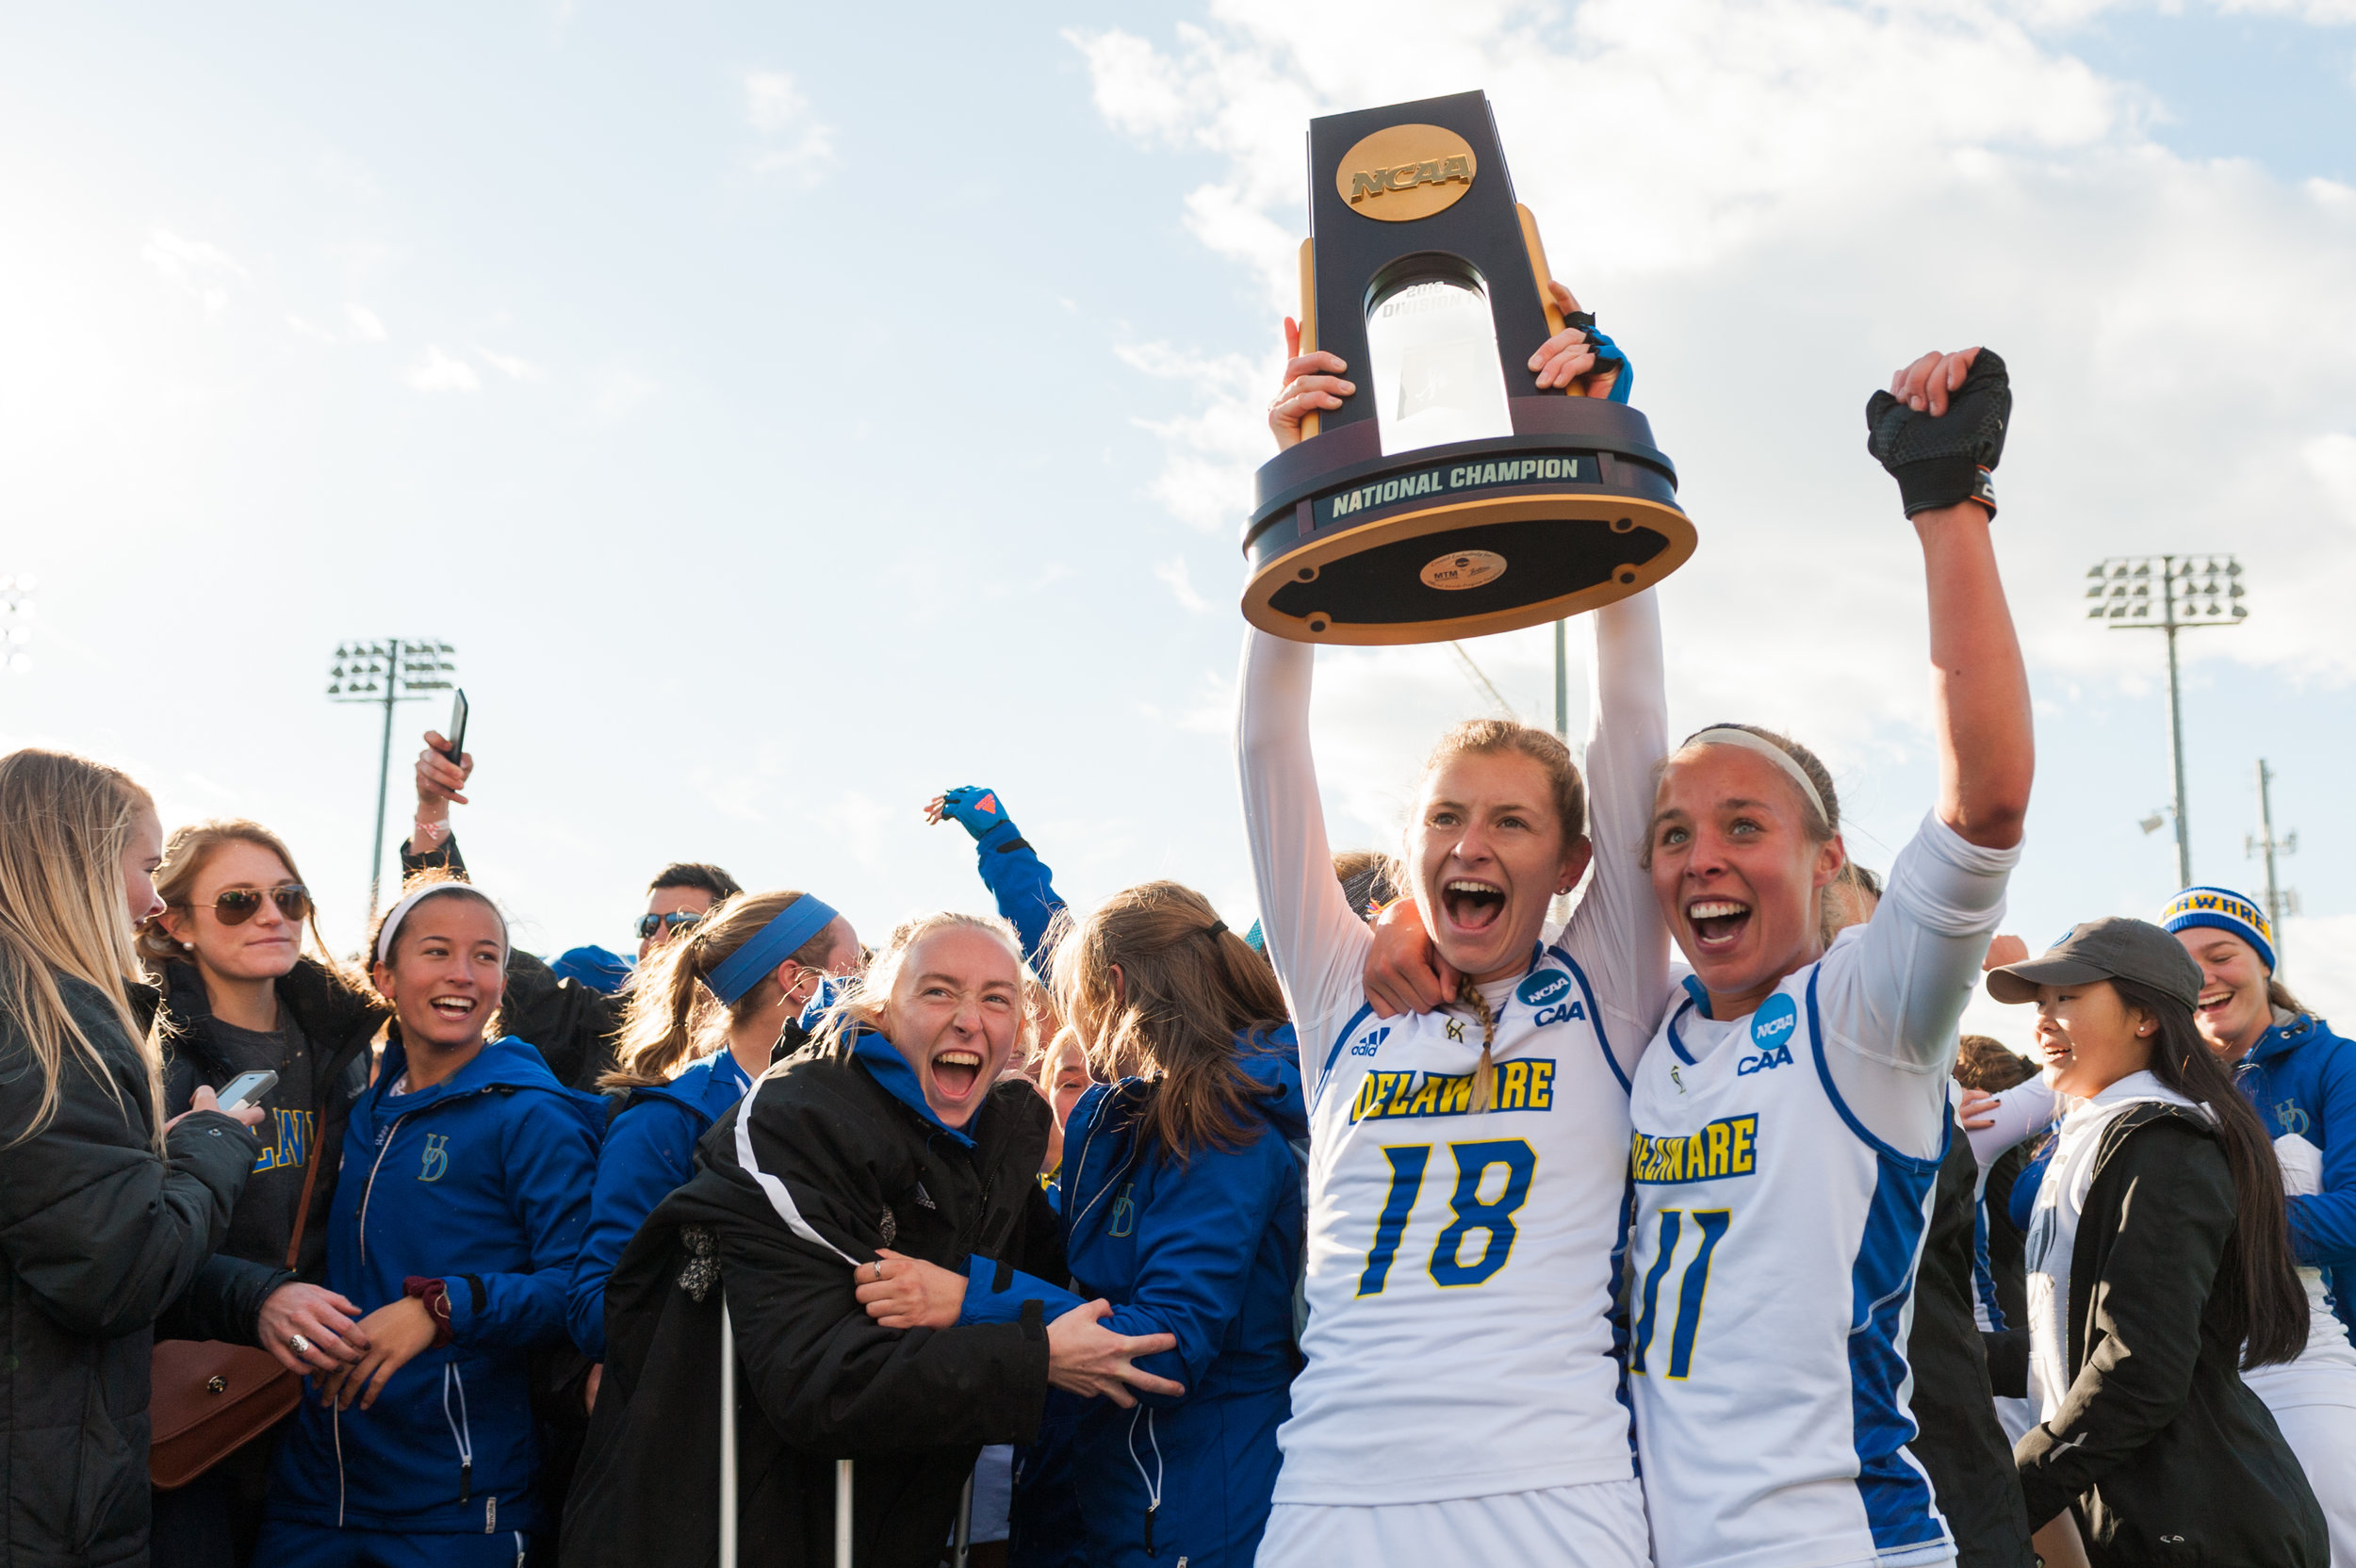 Delaware midfielder Maura Zarkoski (18) and midfielder Mackenzie Mick (11) celebrate after defeating the North Carolina Tar Heels during the 2016 NCAA DI National Championship at the L.R. Hill Sports Complex in Norfolk, VA. Delaware defeated North Carolina 3-2.